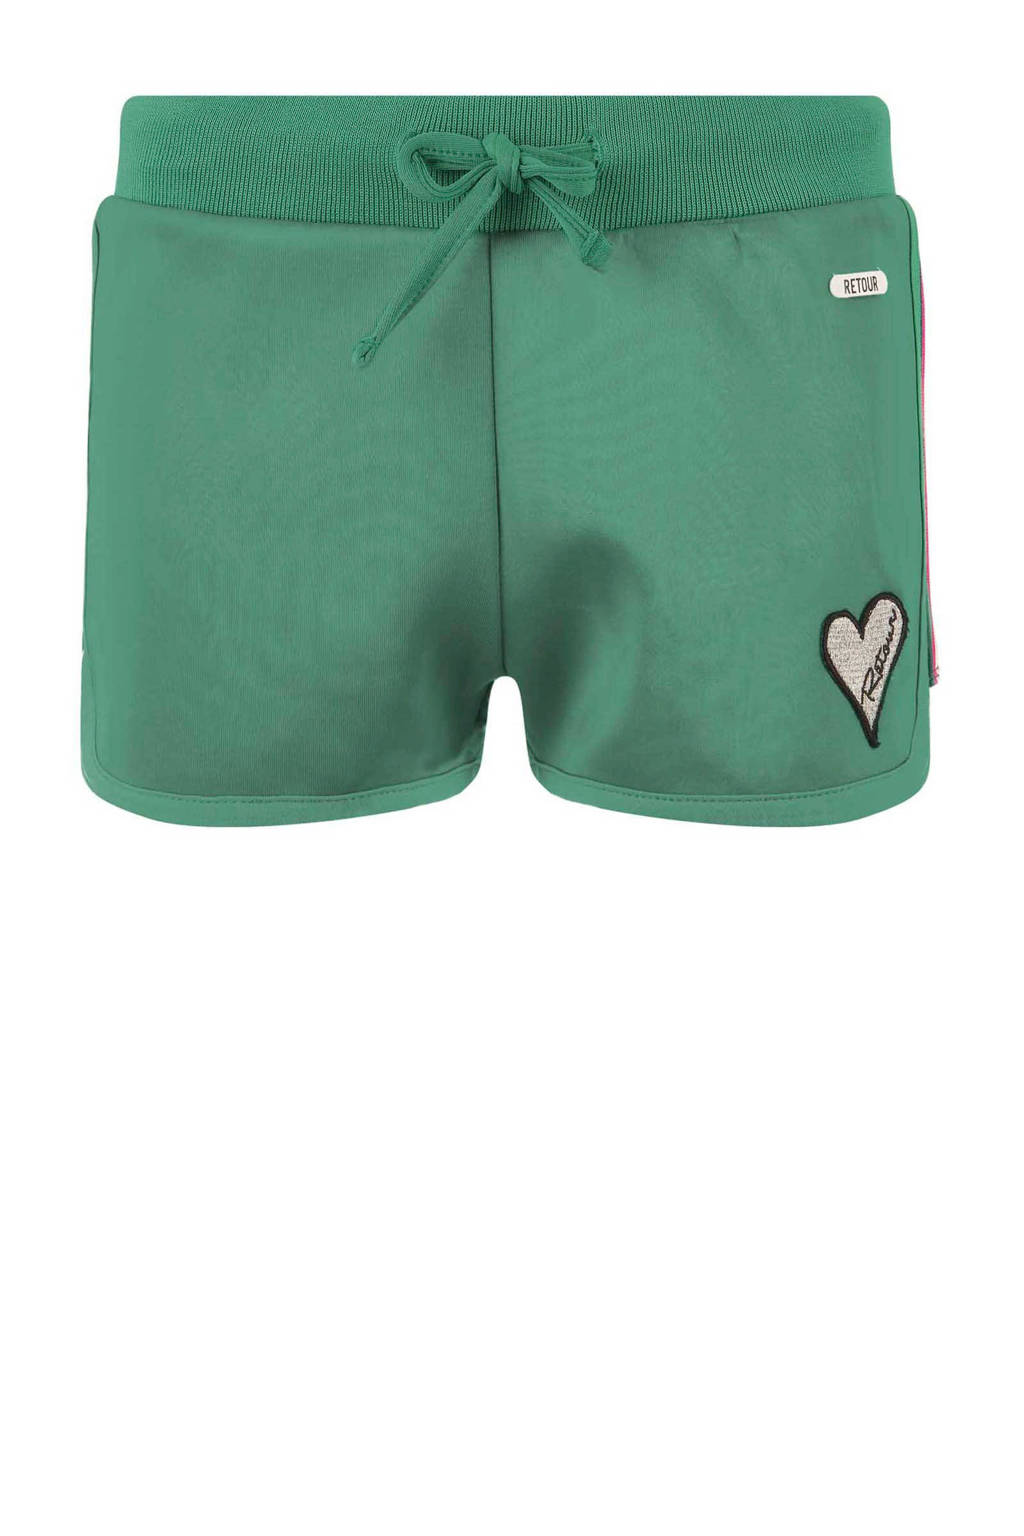 Retour Denim sweatshort Monique met zijstreep groen, Groen